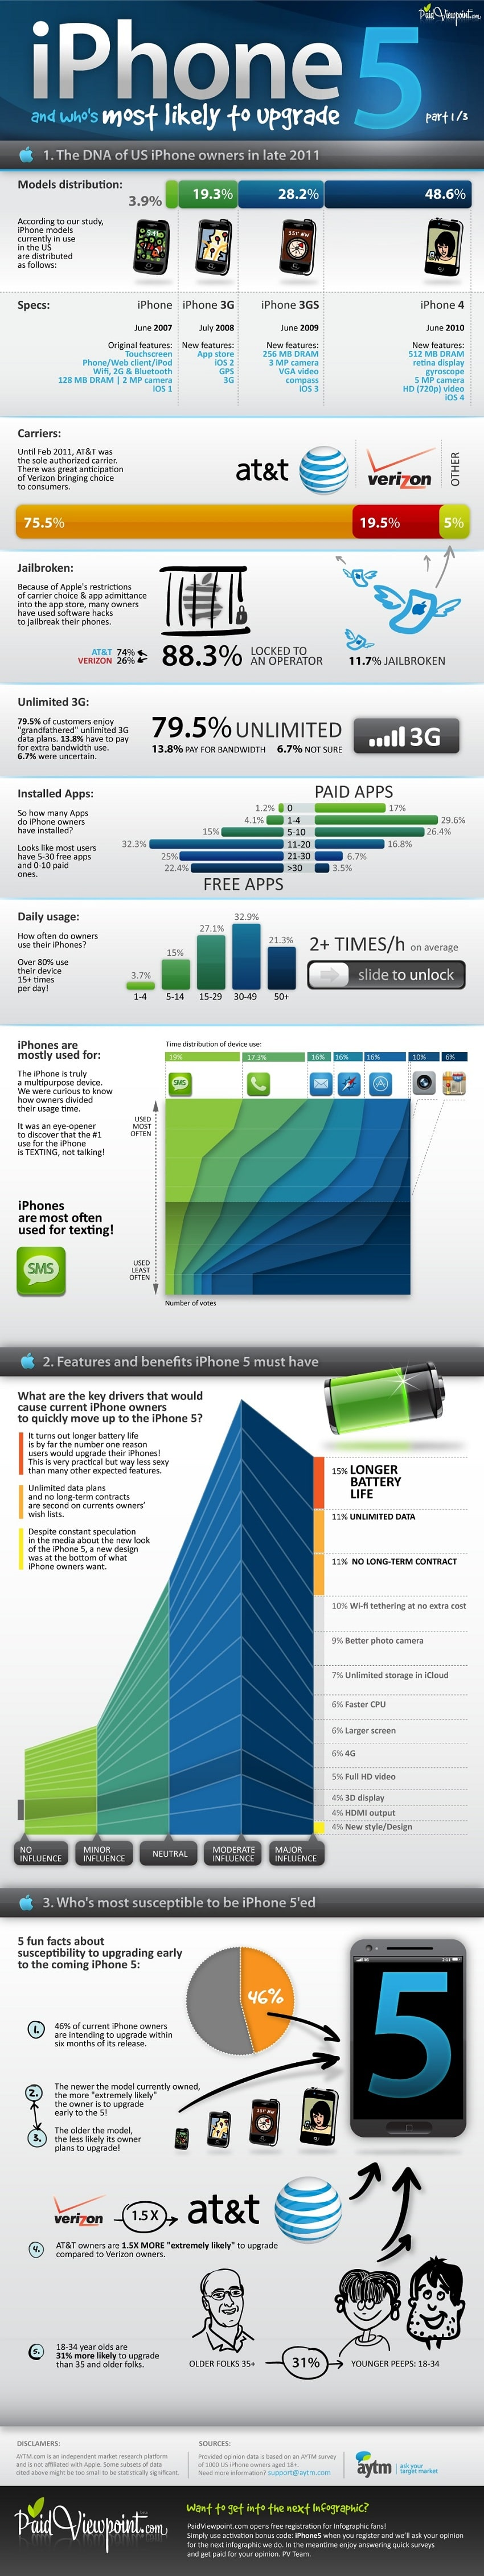 iPhone 5 Expectation Visualization Infographic